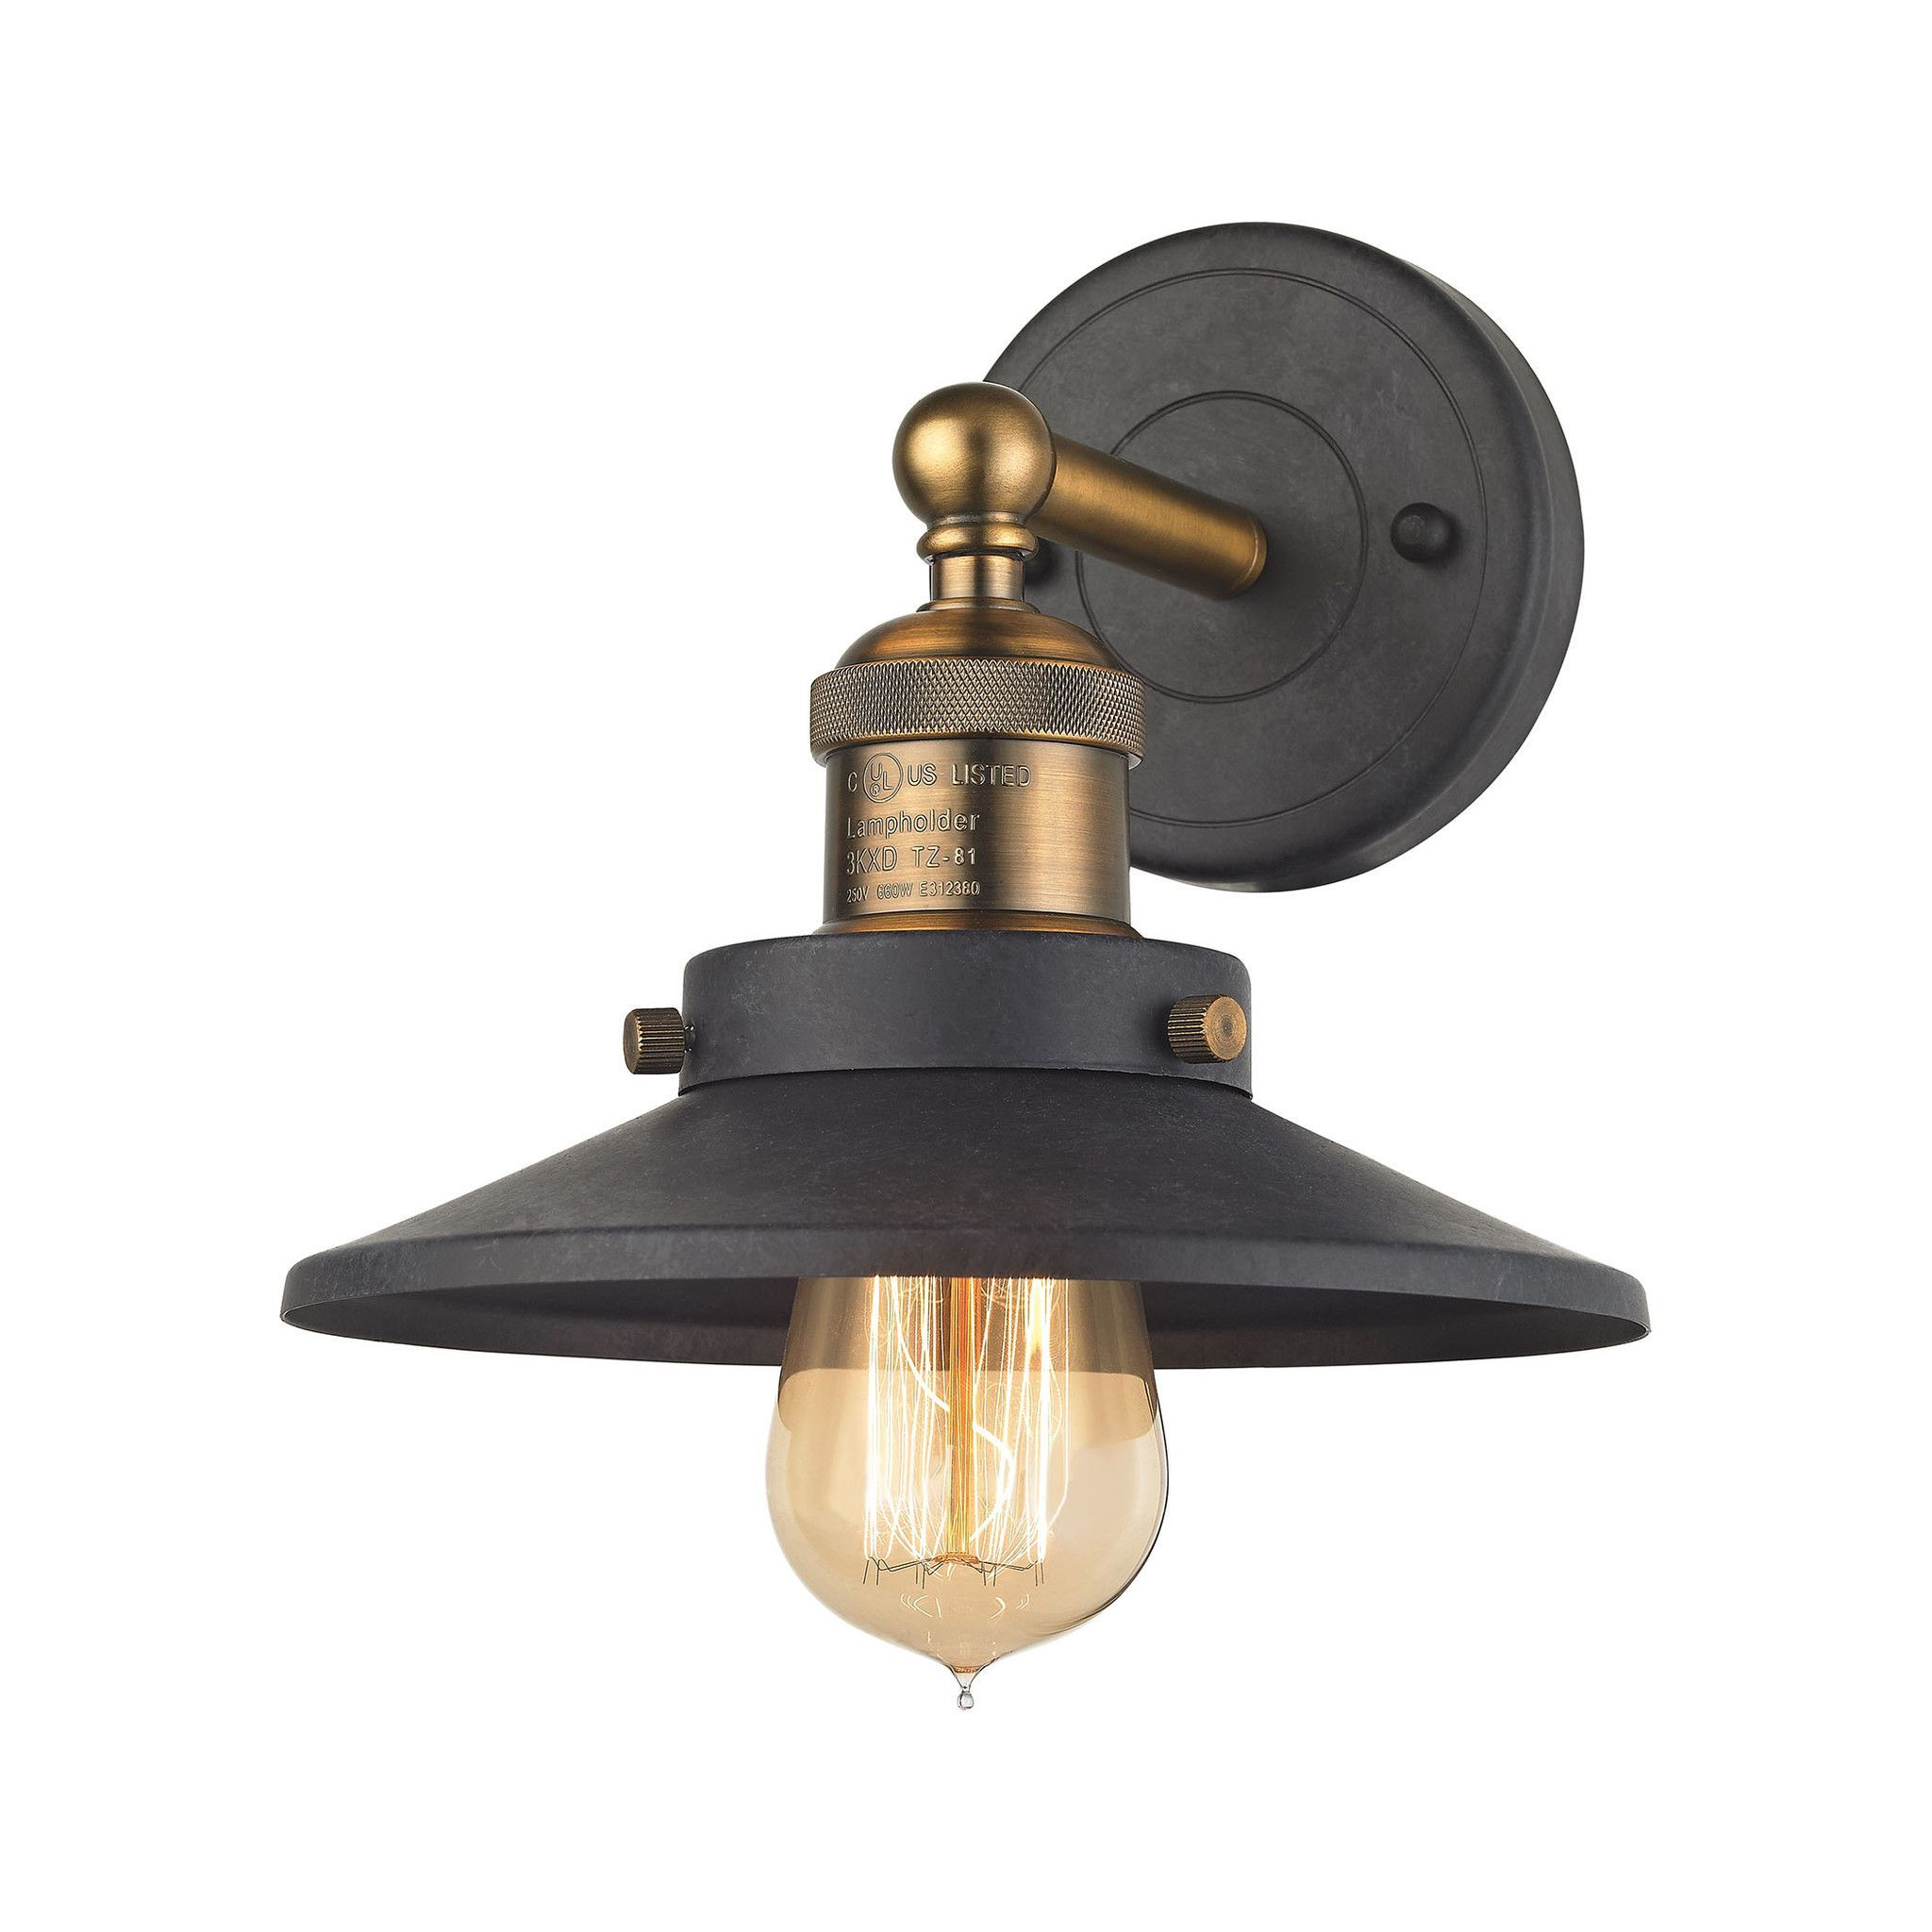 aged glass hudson shown bathroom cfm wide sconce in agb image finish lighting capitol brass valley magnifying wentworth item inch wall